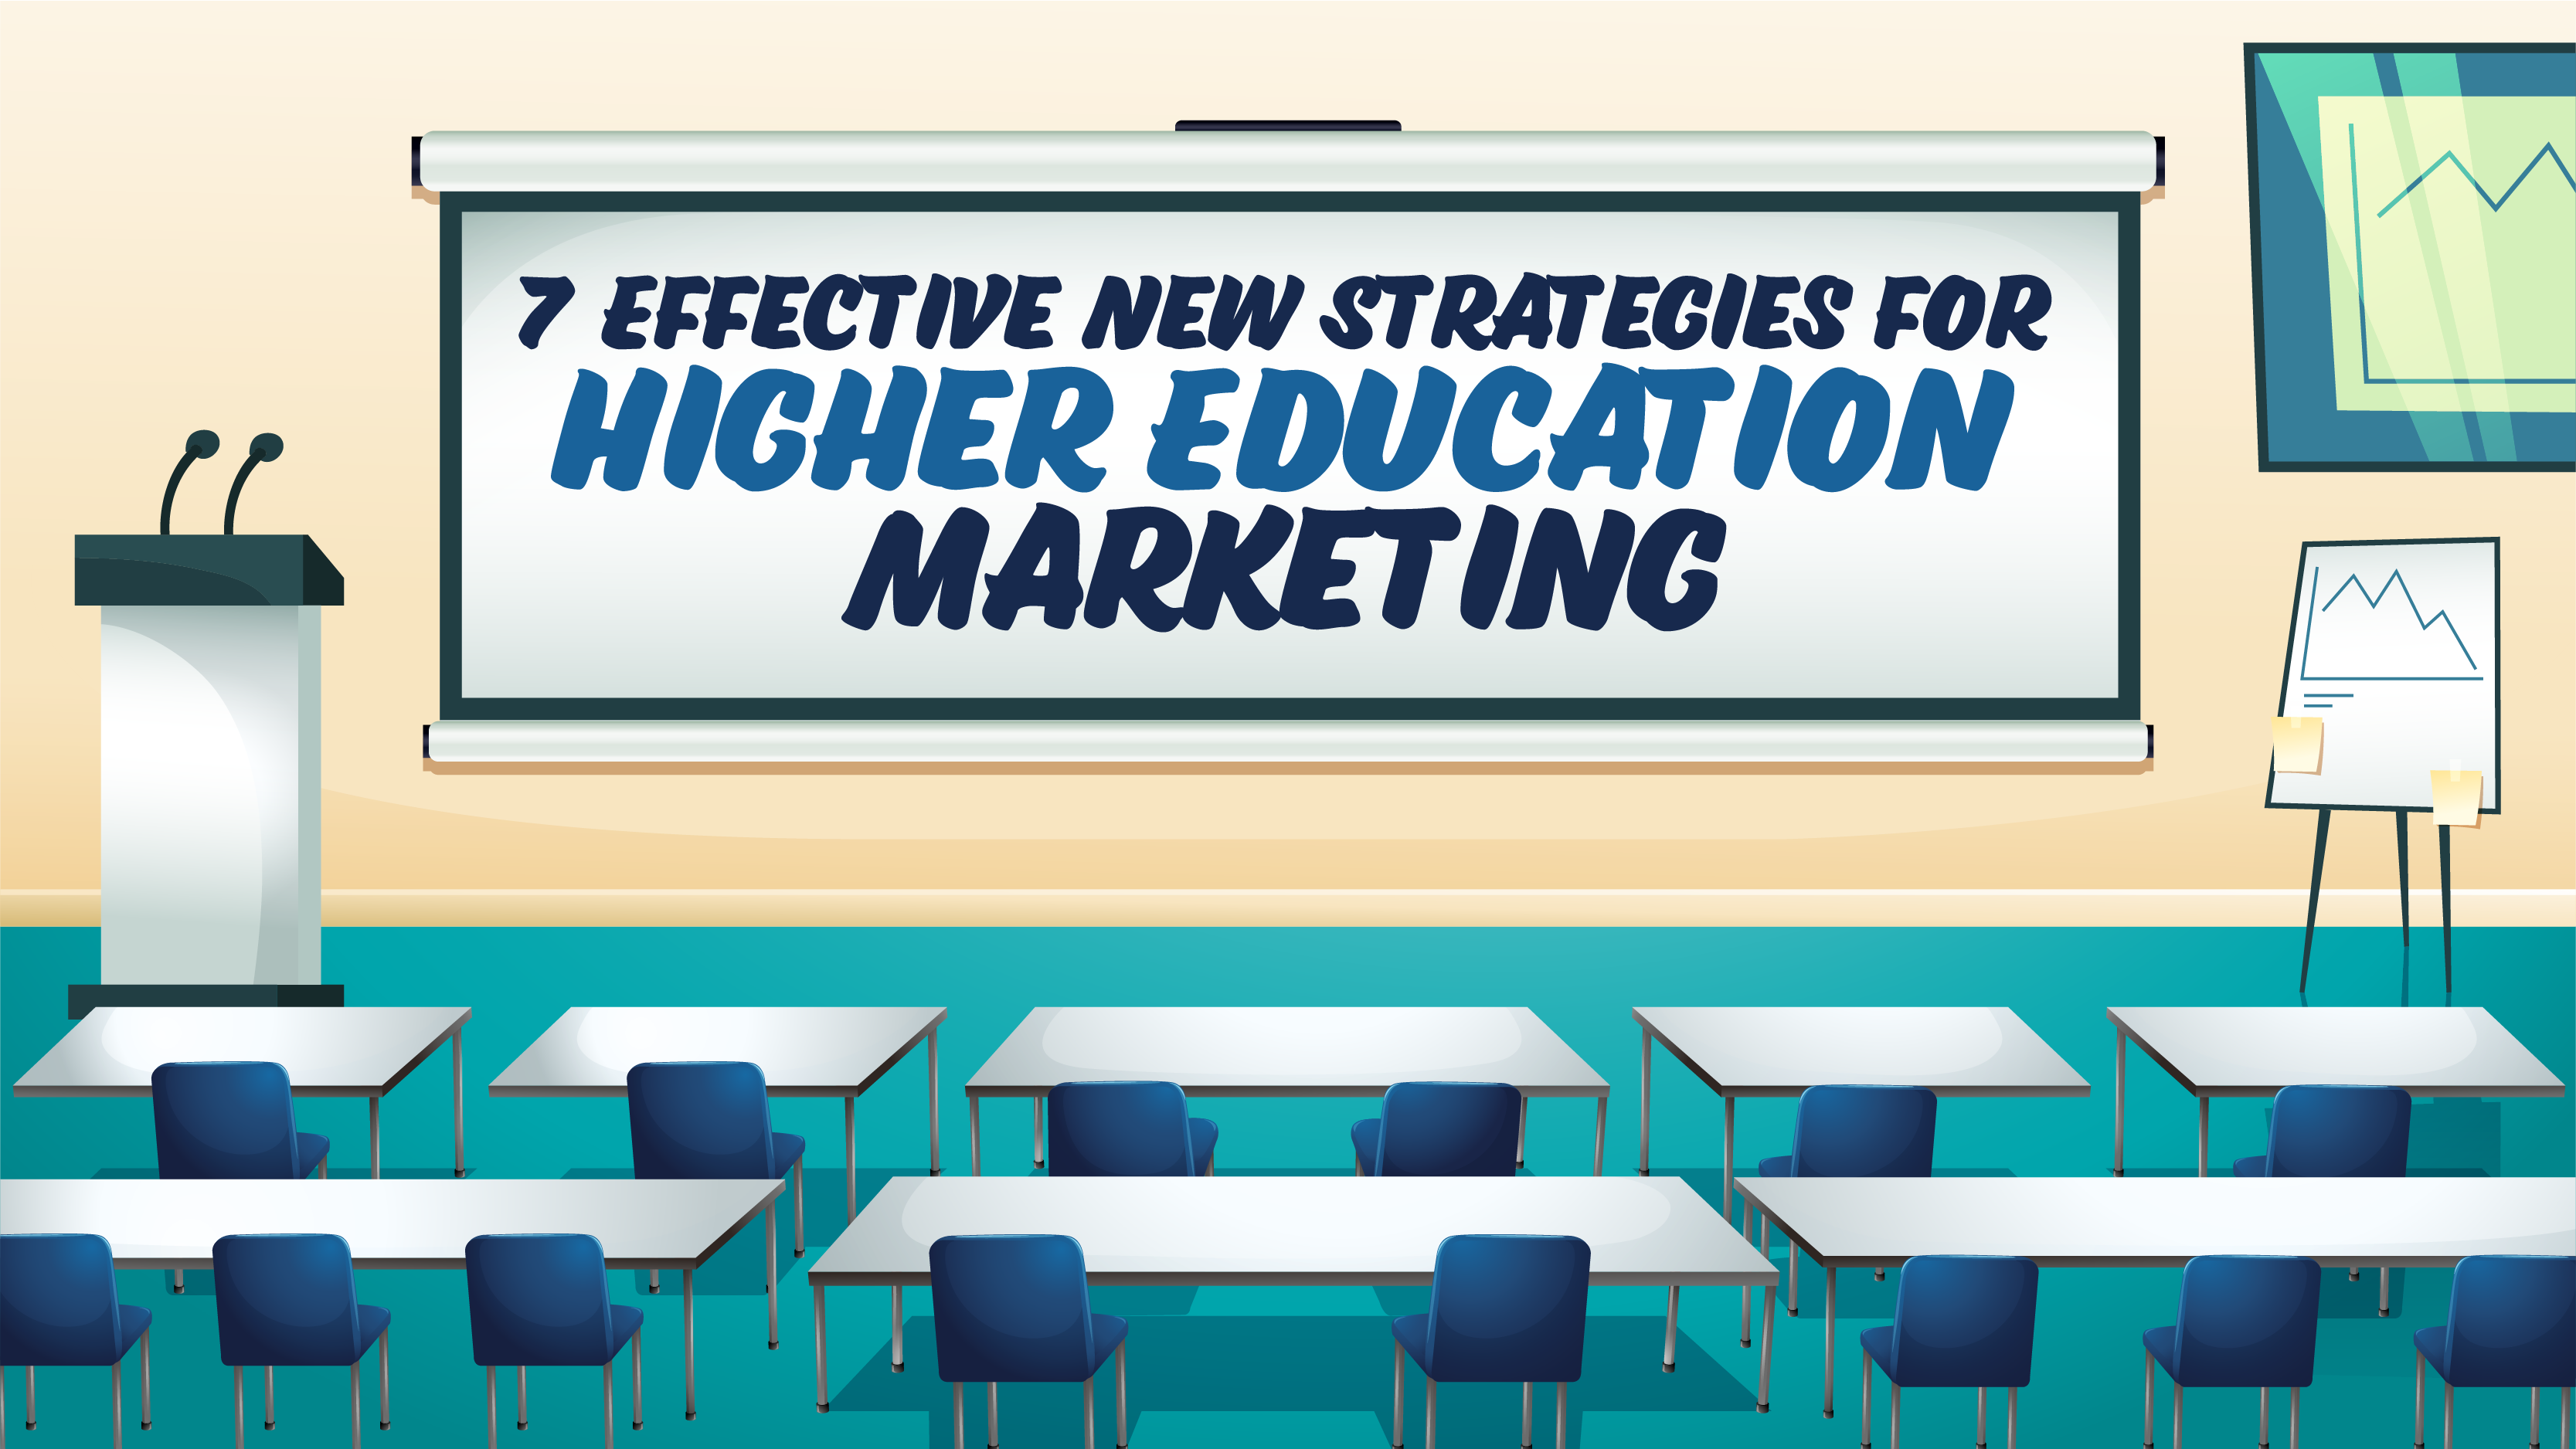 10 Effective New Strategies For Higher Education Marketing In 2019